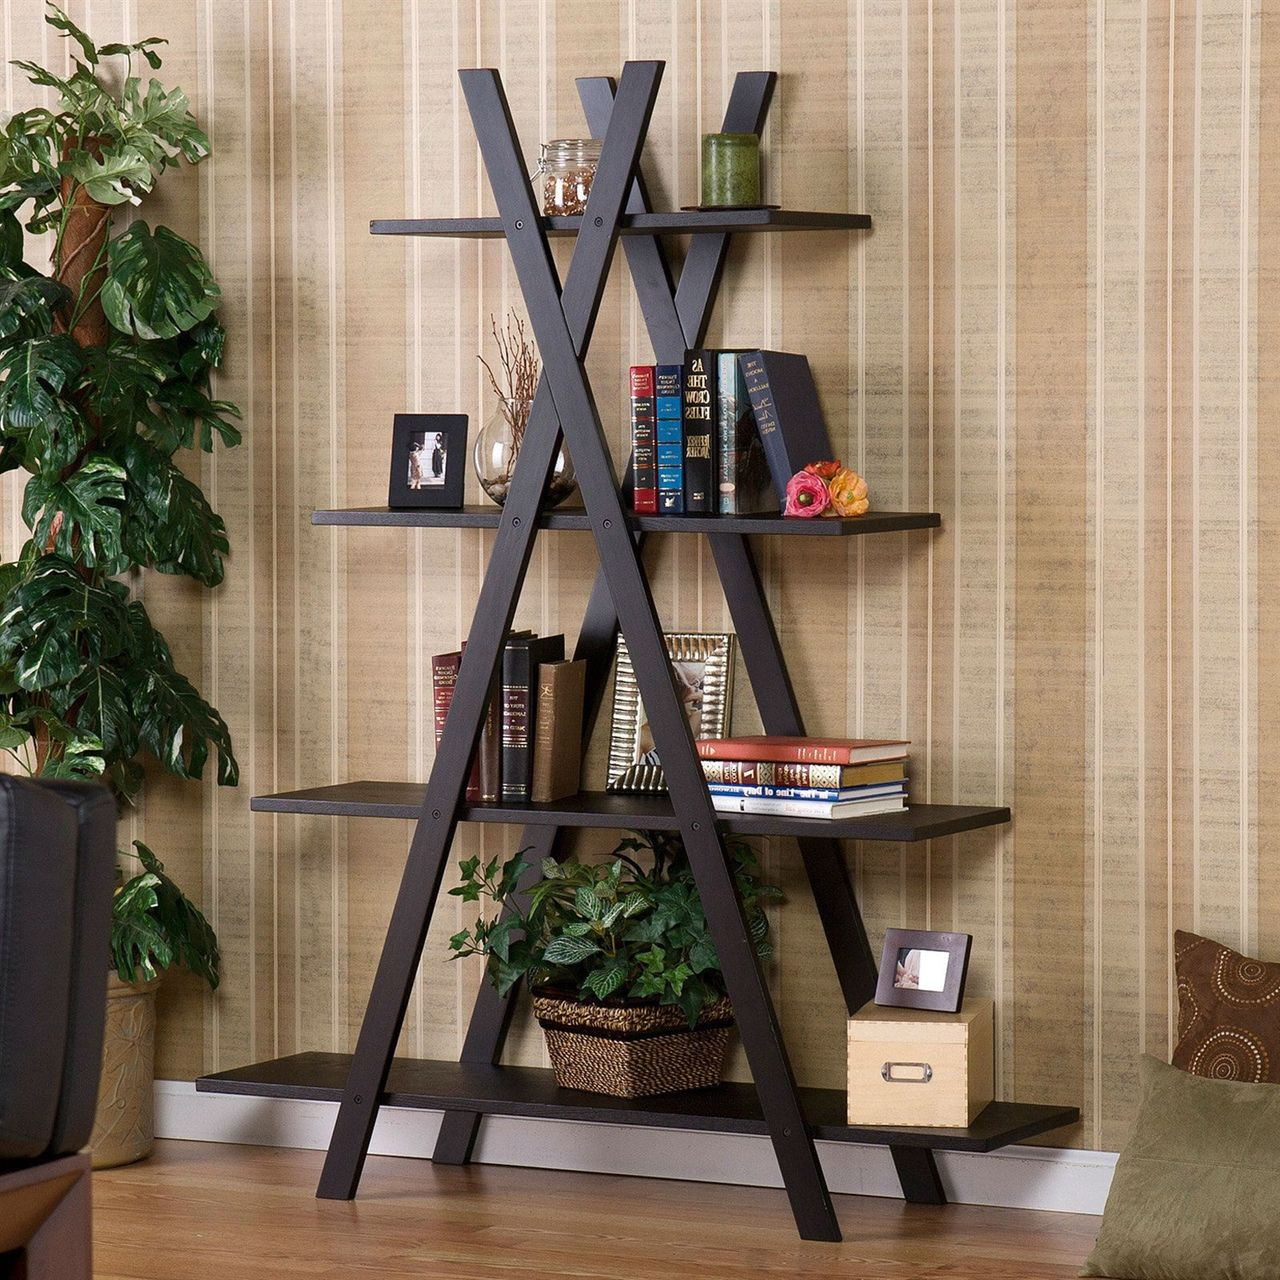 Modern 4 Shelf Bookcase Bookshelf Display Shelves,Office/Living Room/Bedroom